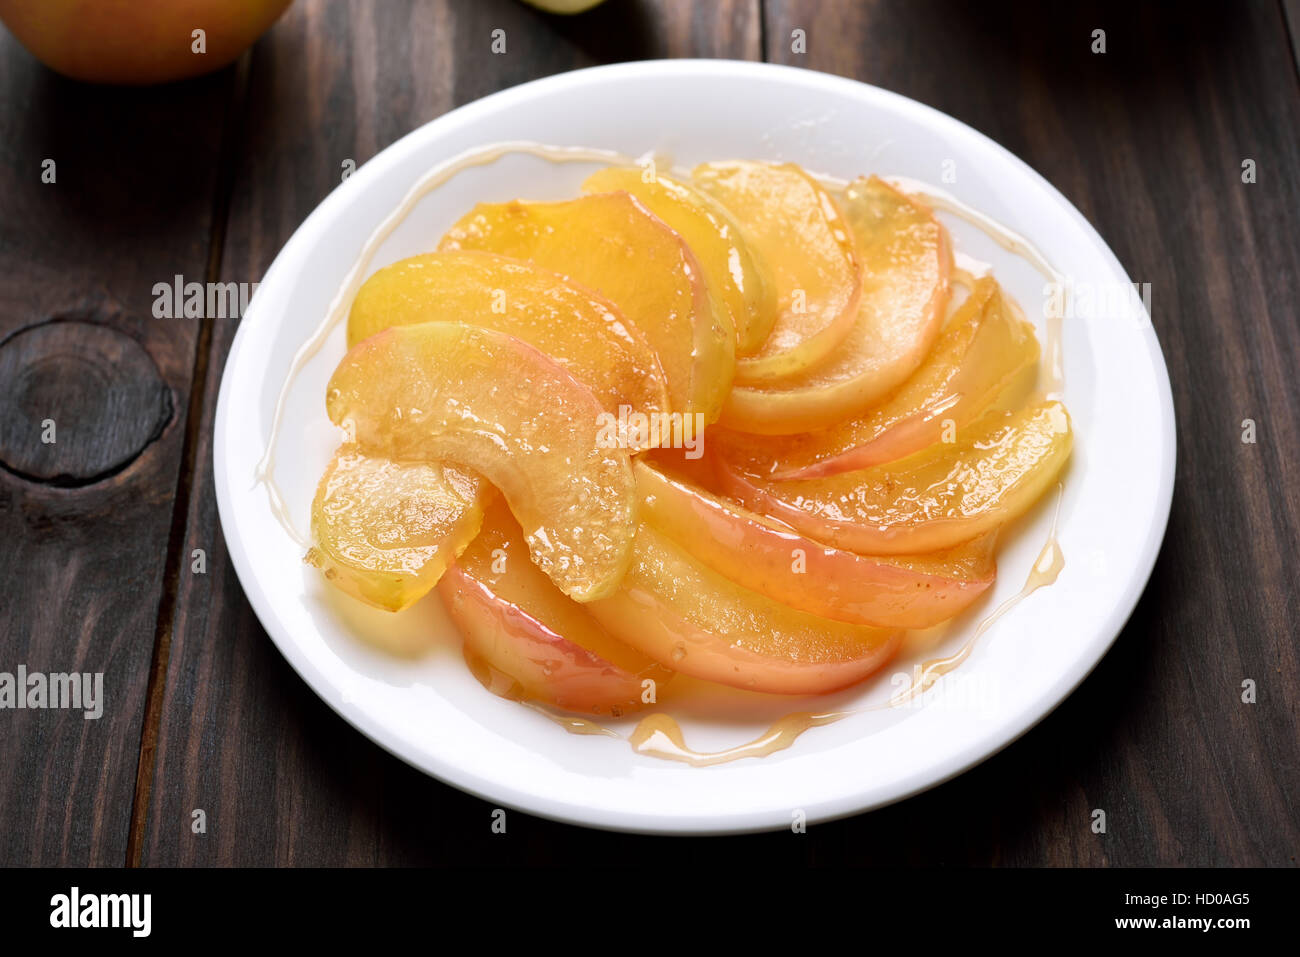 Caramelized apple slices on plate - Stock Image